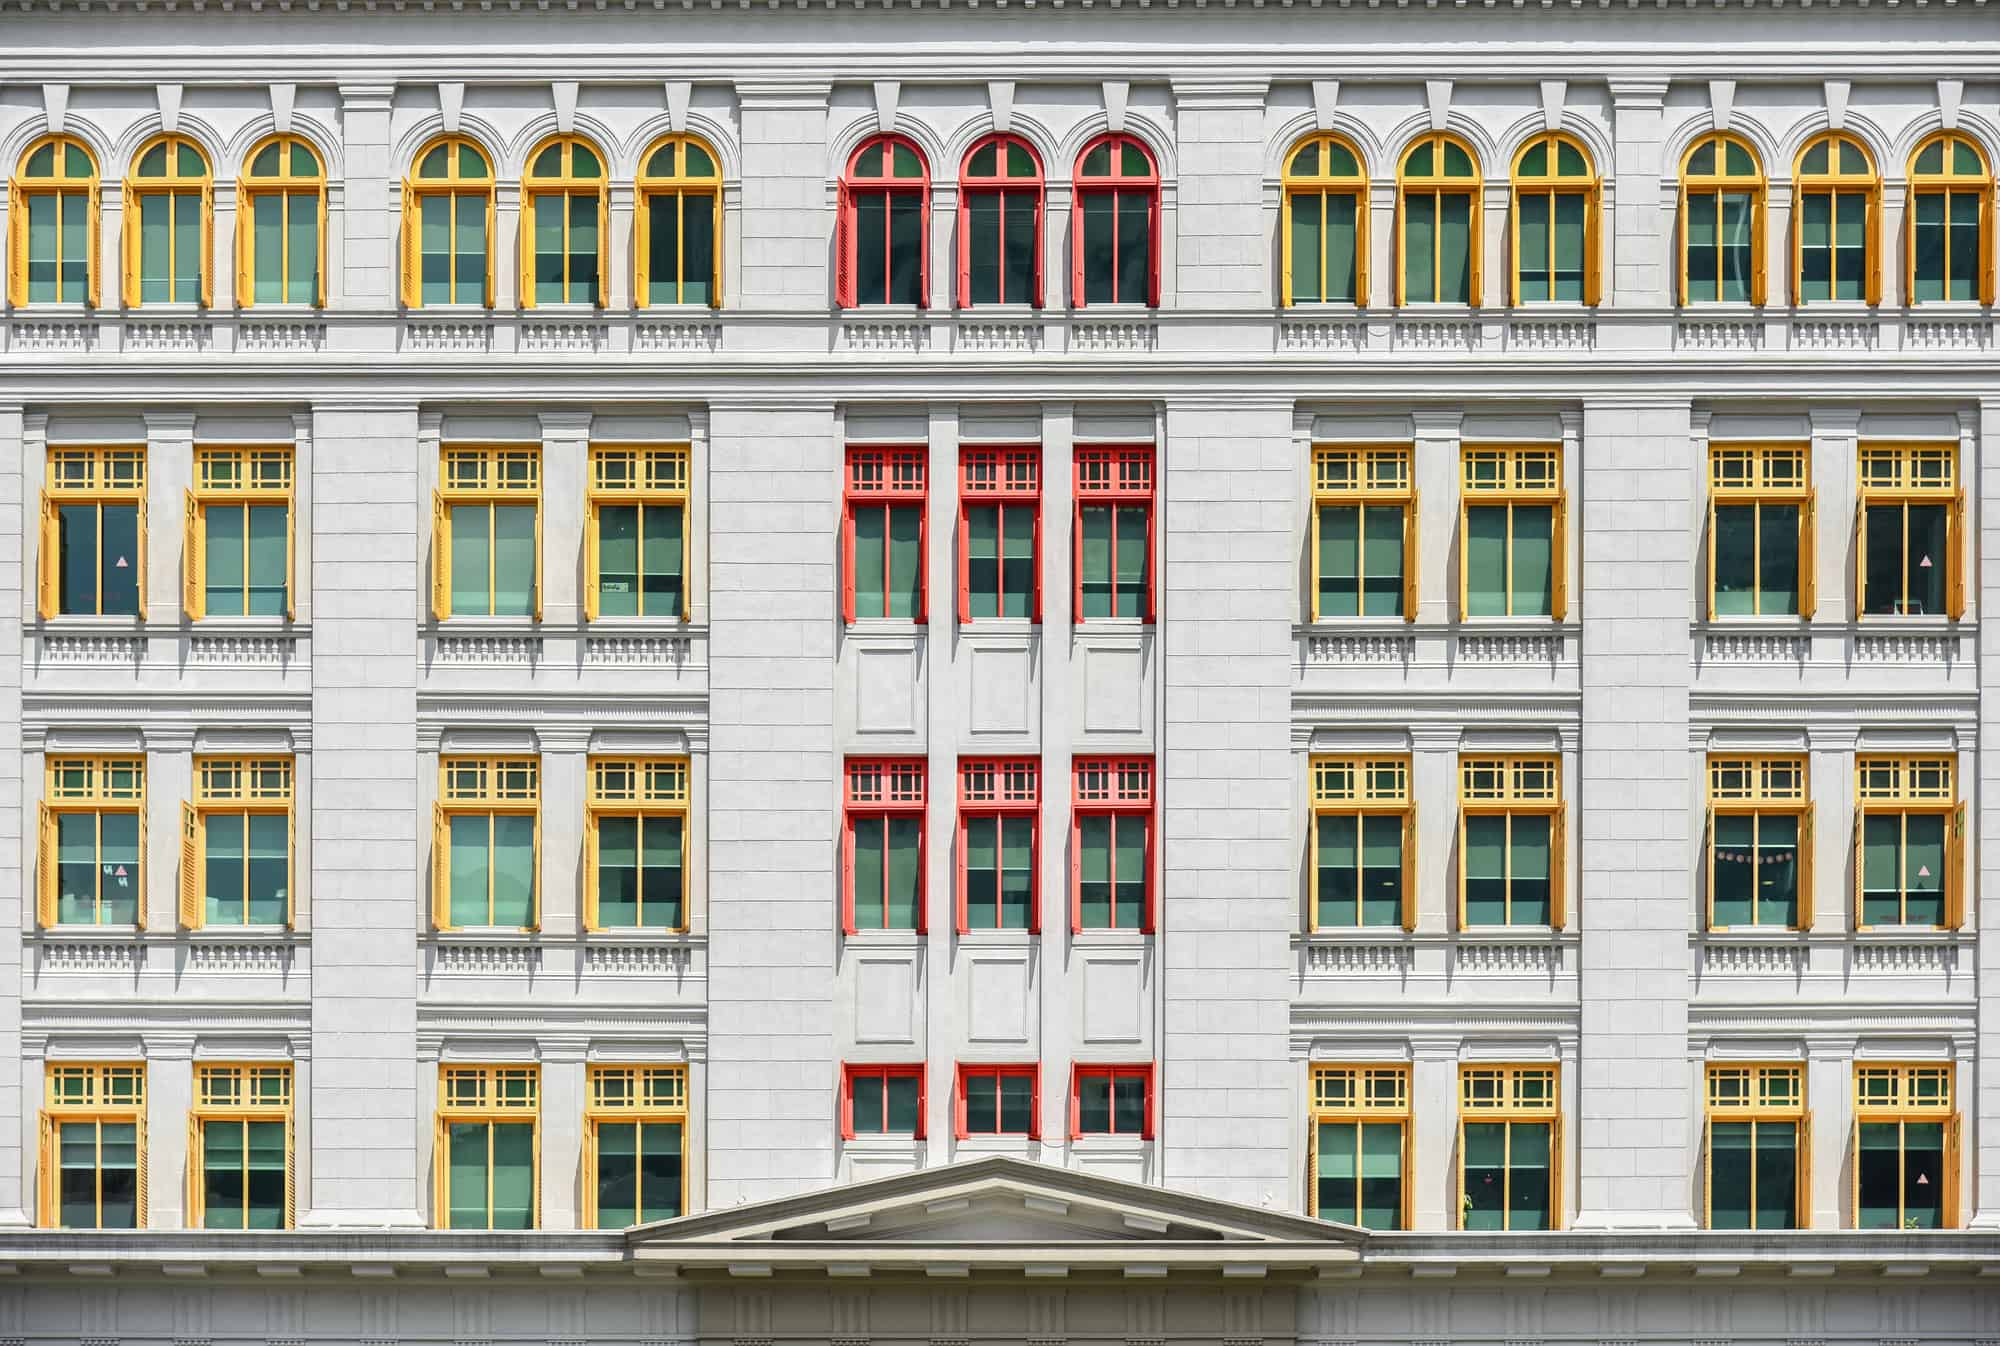 symmetry in photography